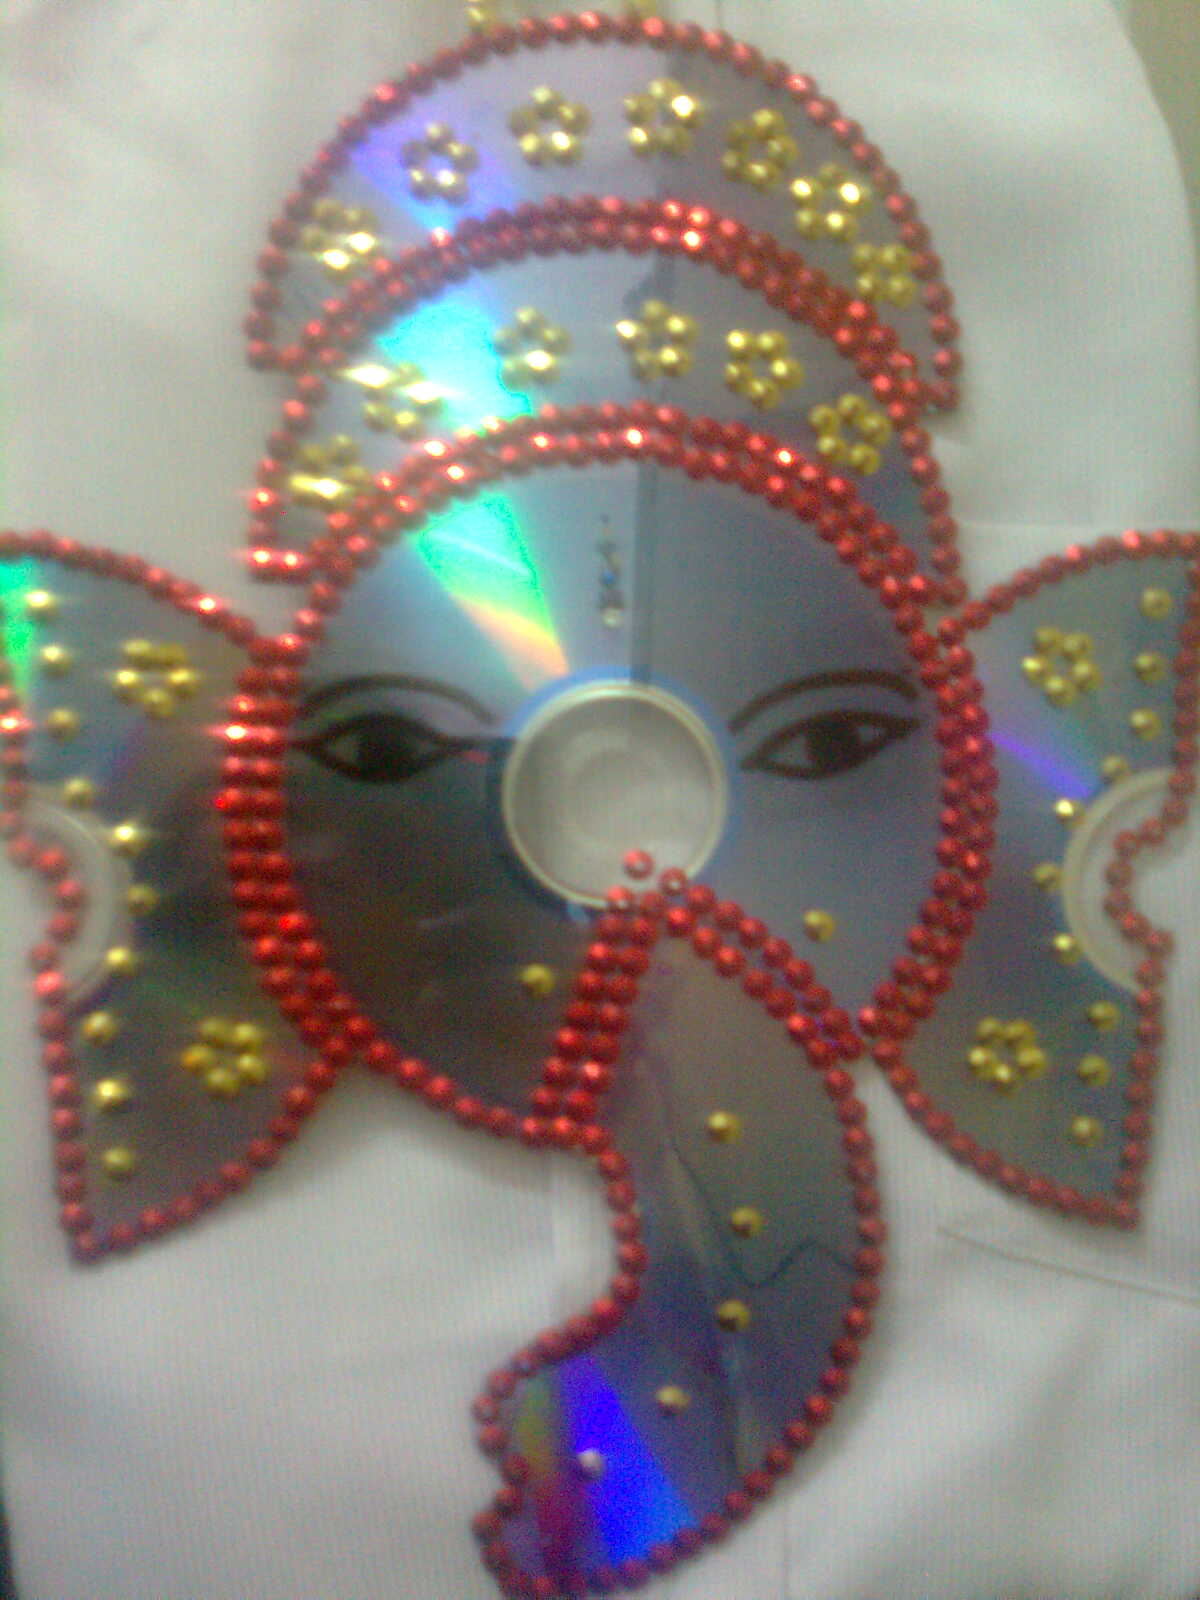 Maha arts crafts cd ganesh vinayagar for Craft using waste